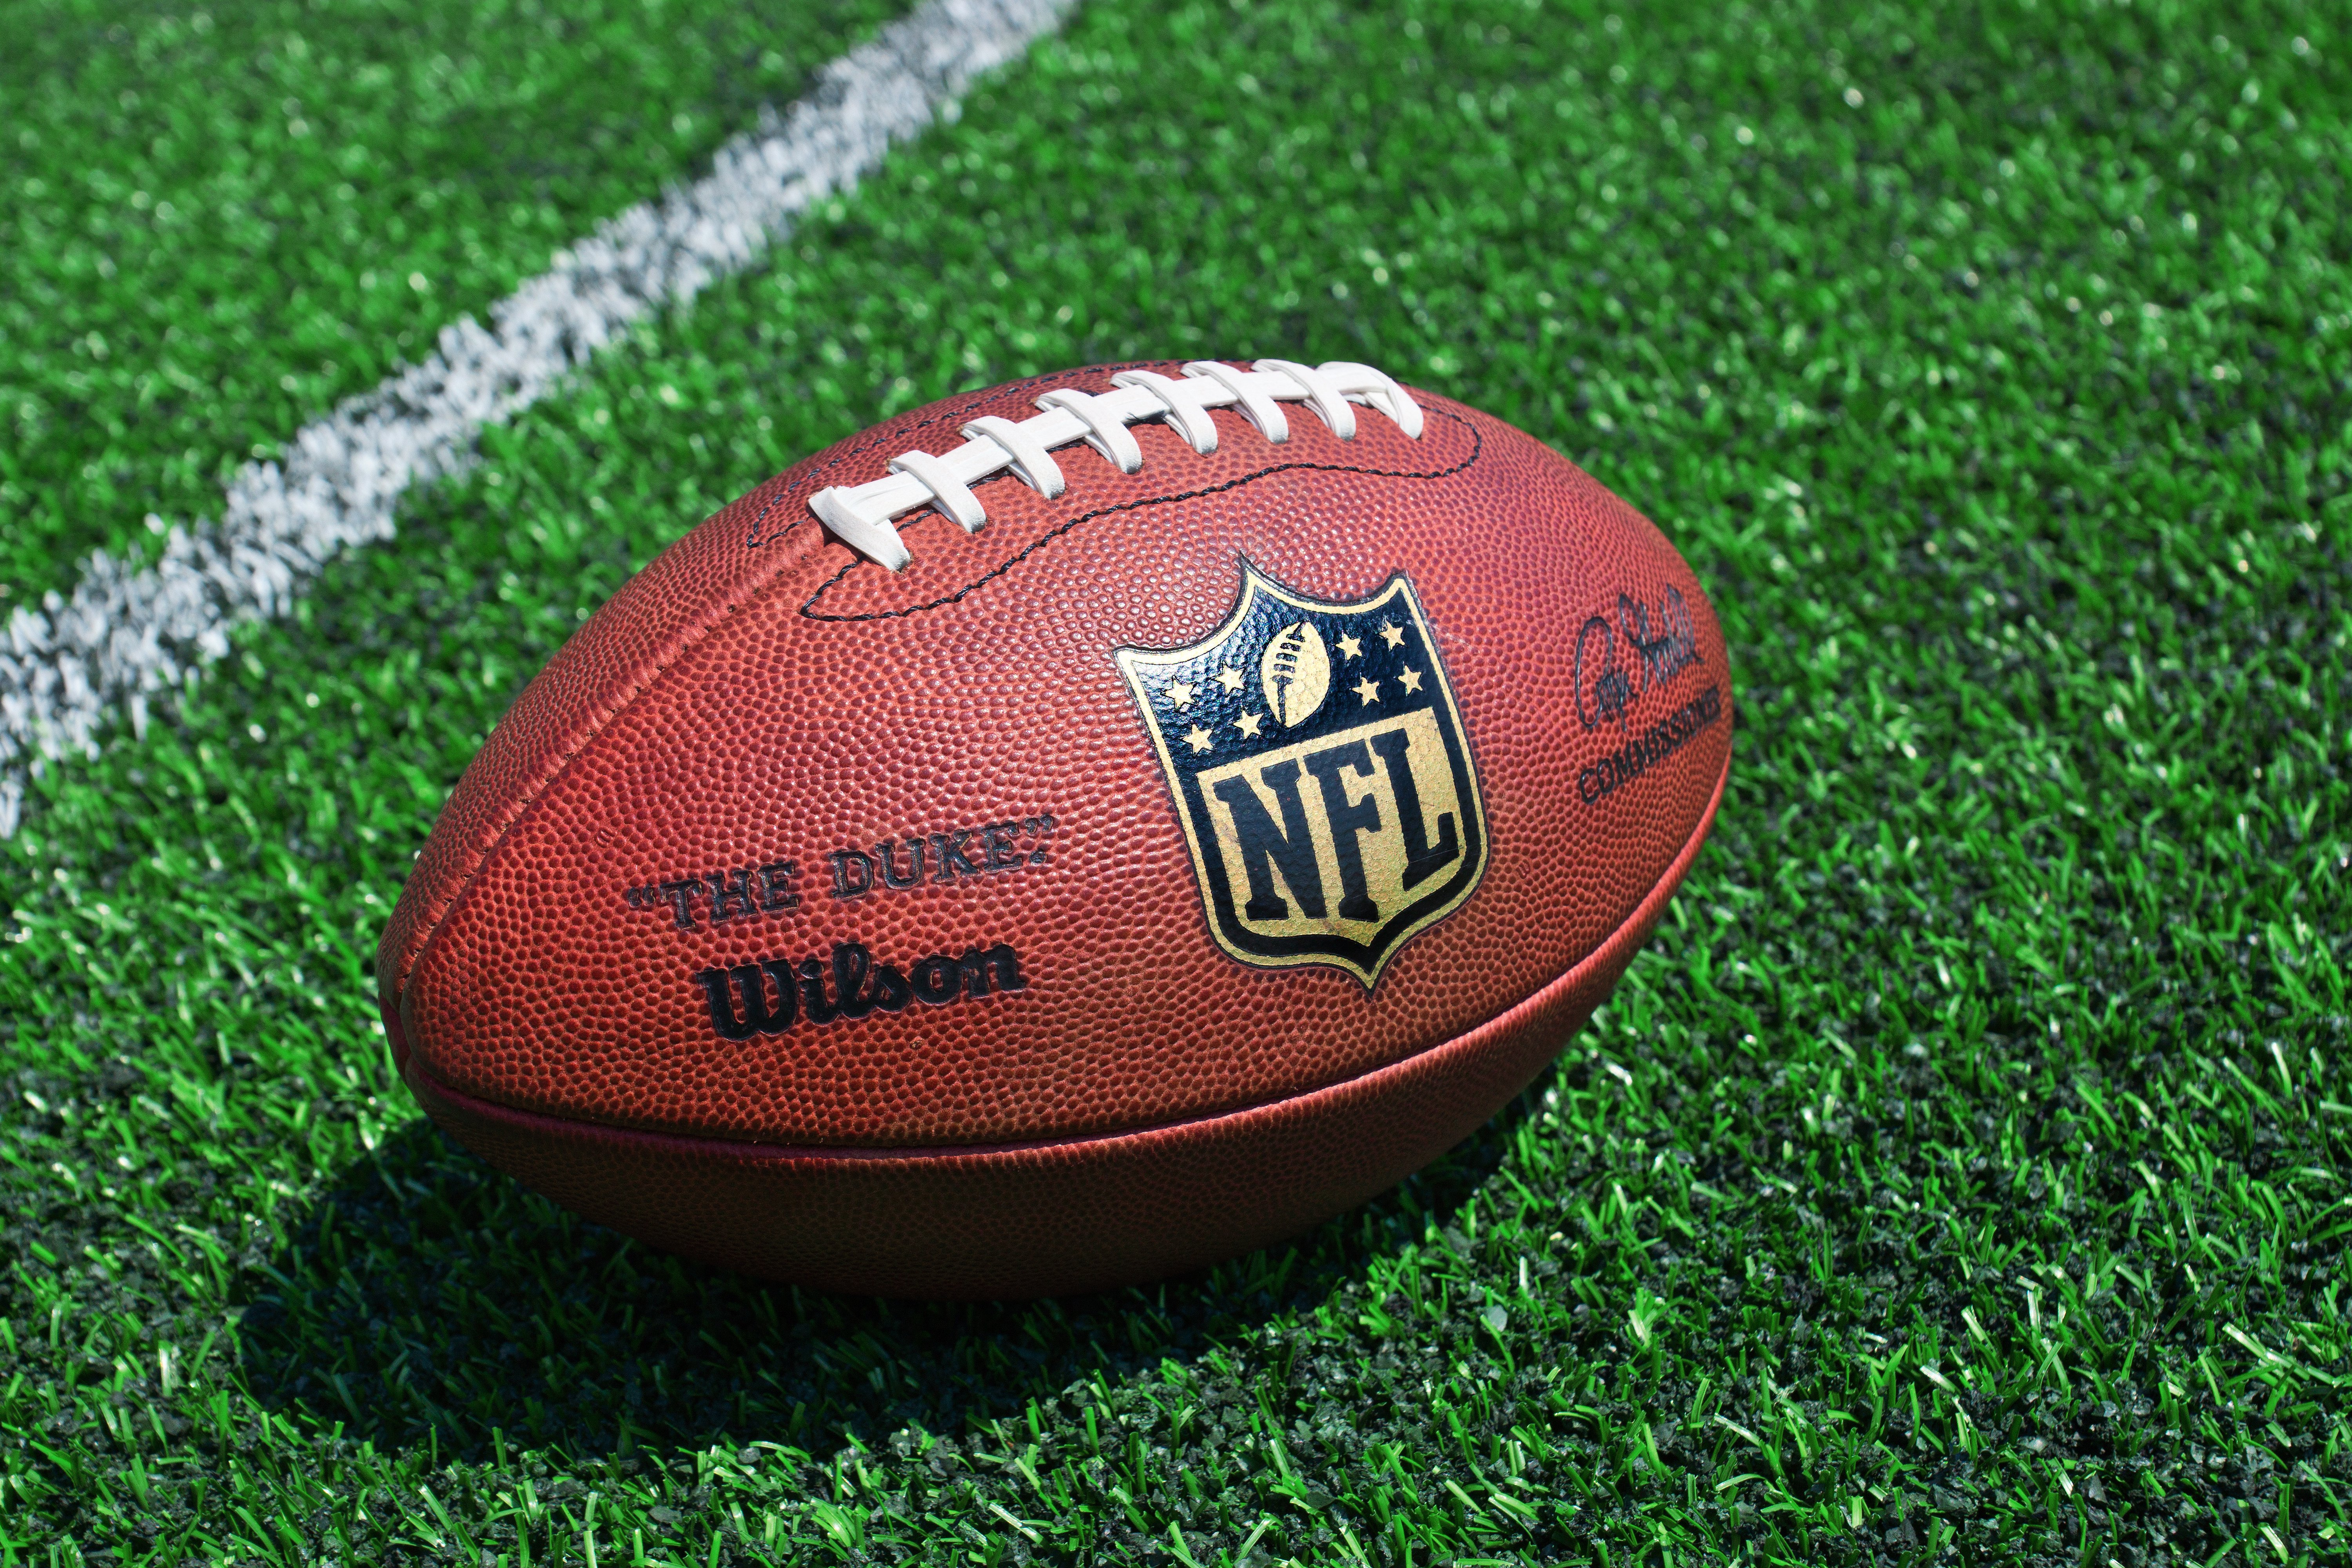 Photo of official NFL football on field. Source: Shutterstock